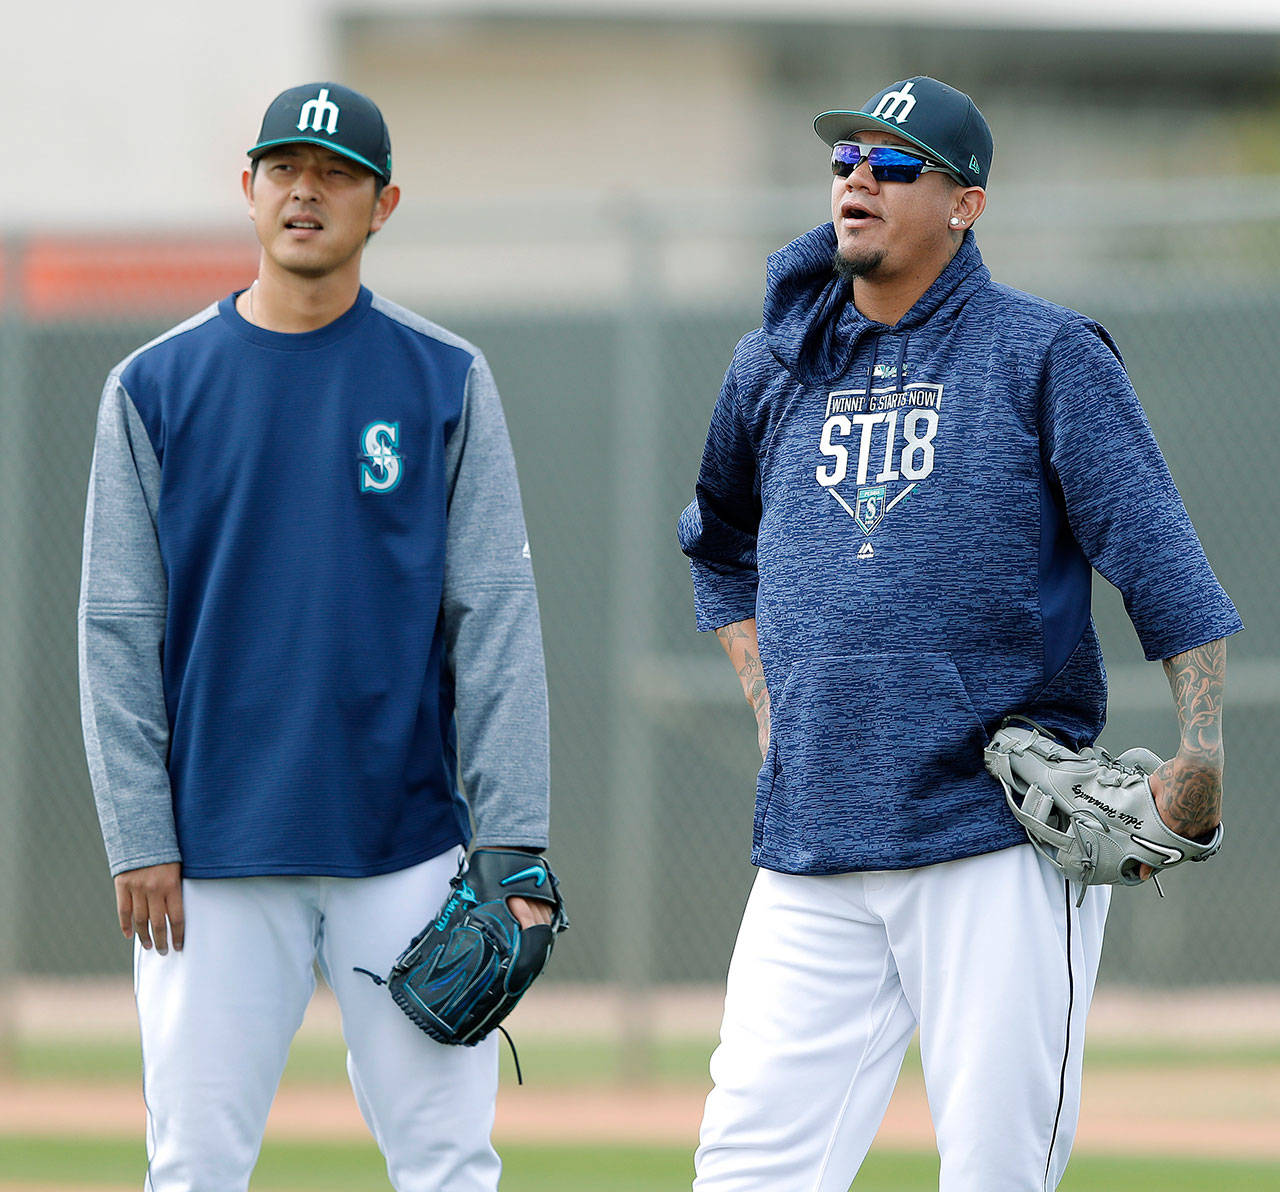 Seattle's Felix Hernandez (right) and Hisashi Iwakuma watch a drill during spring training on Monday in Peoria, Ariz.(AP Photo/Charlie Neibergall)